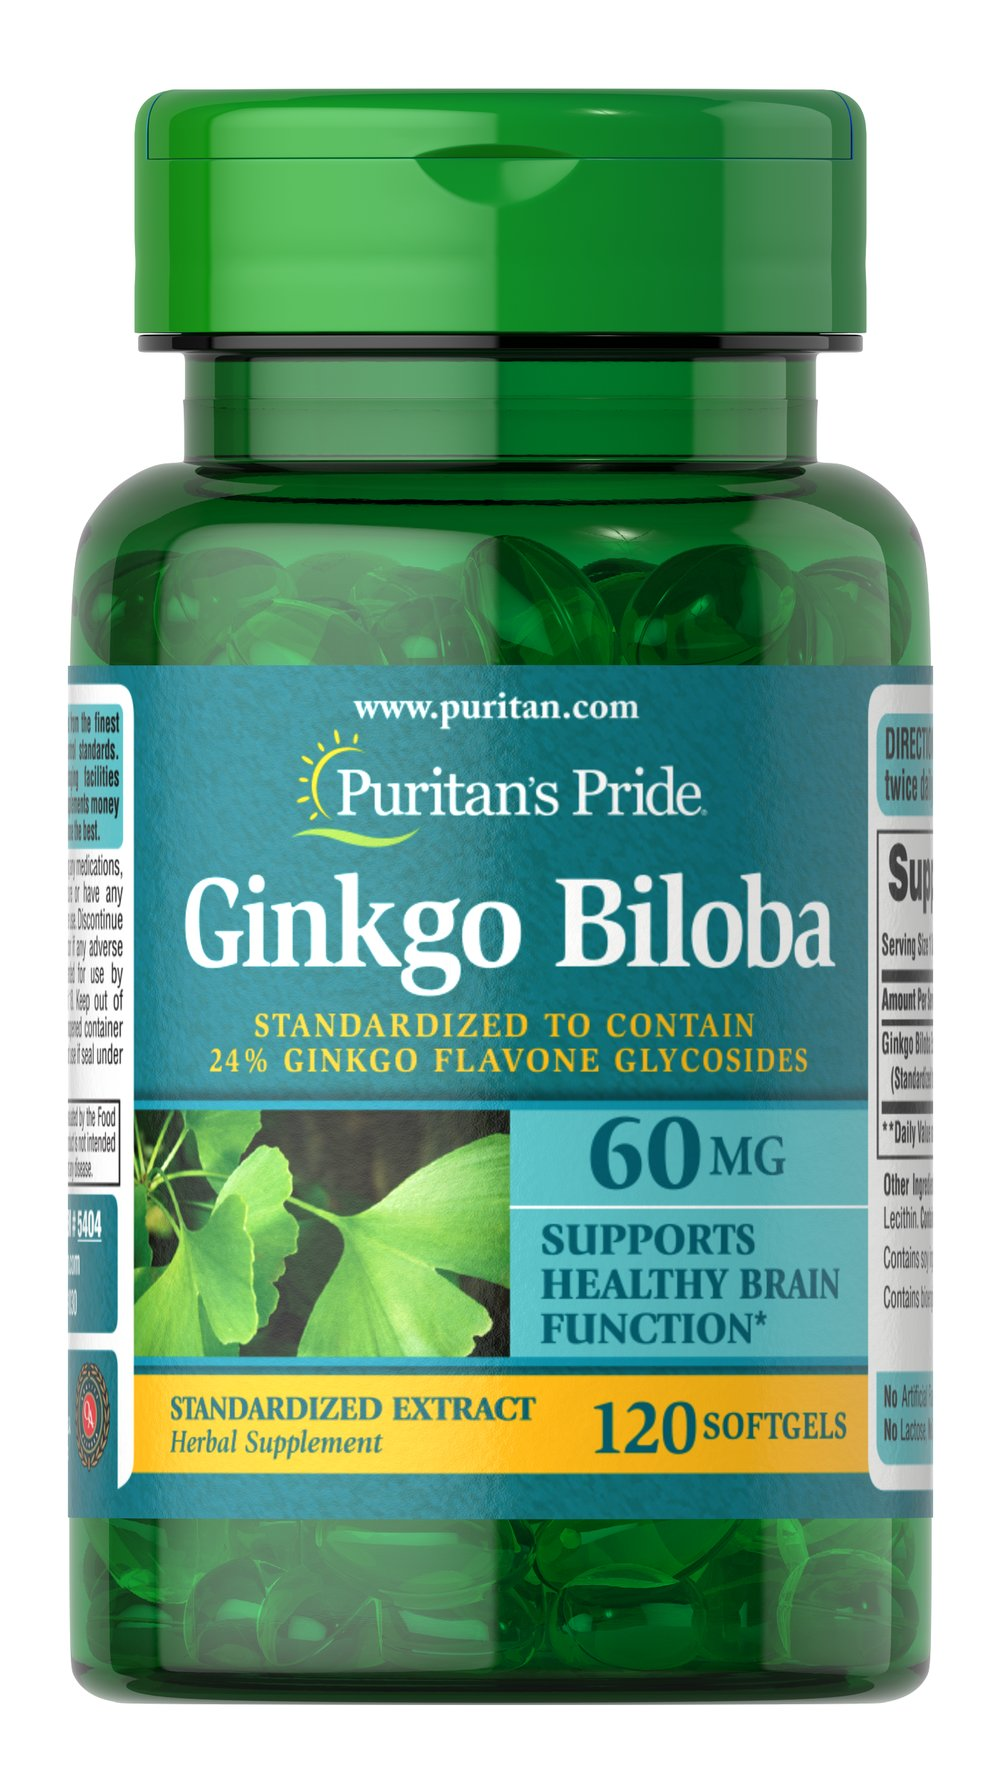 Ginkgo Biloba Standardized Extract 60 mg Thumbnail Alternate Bottle View